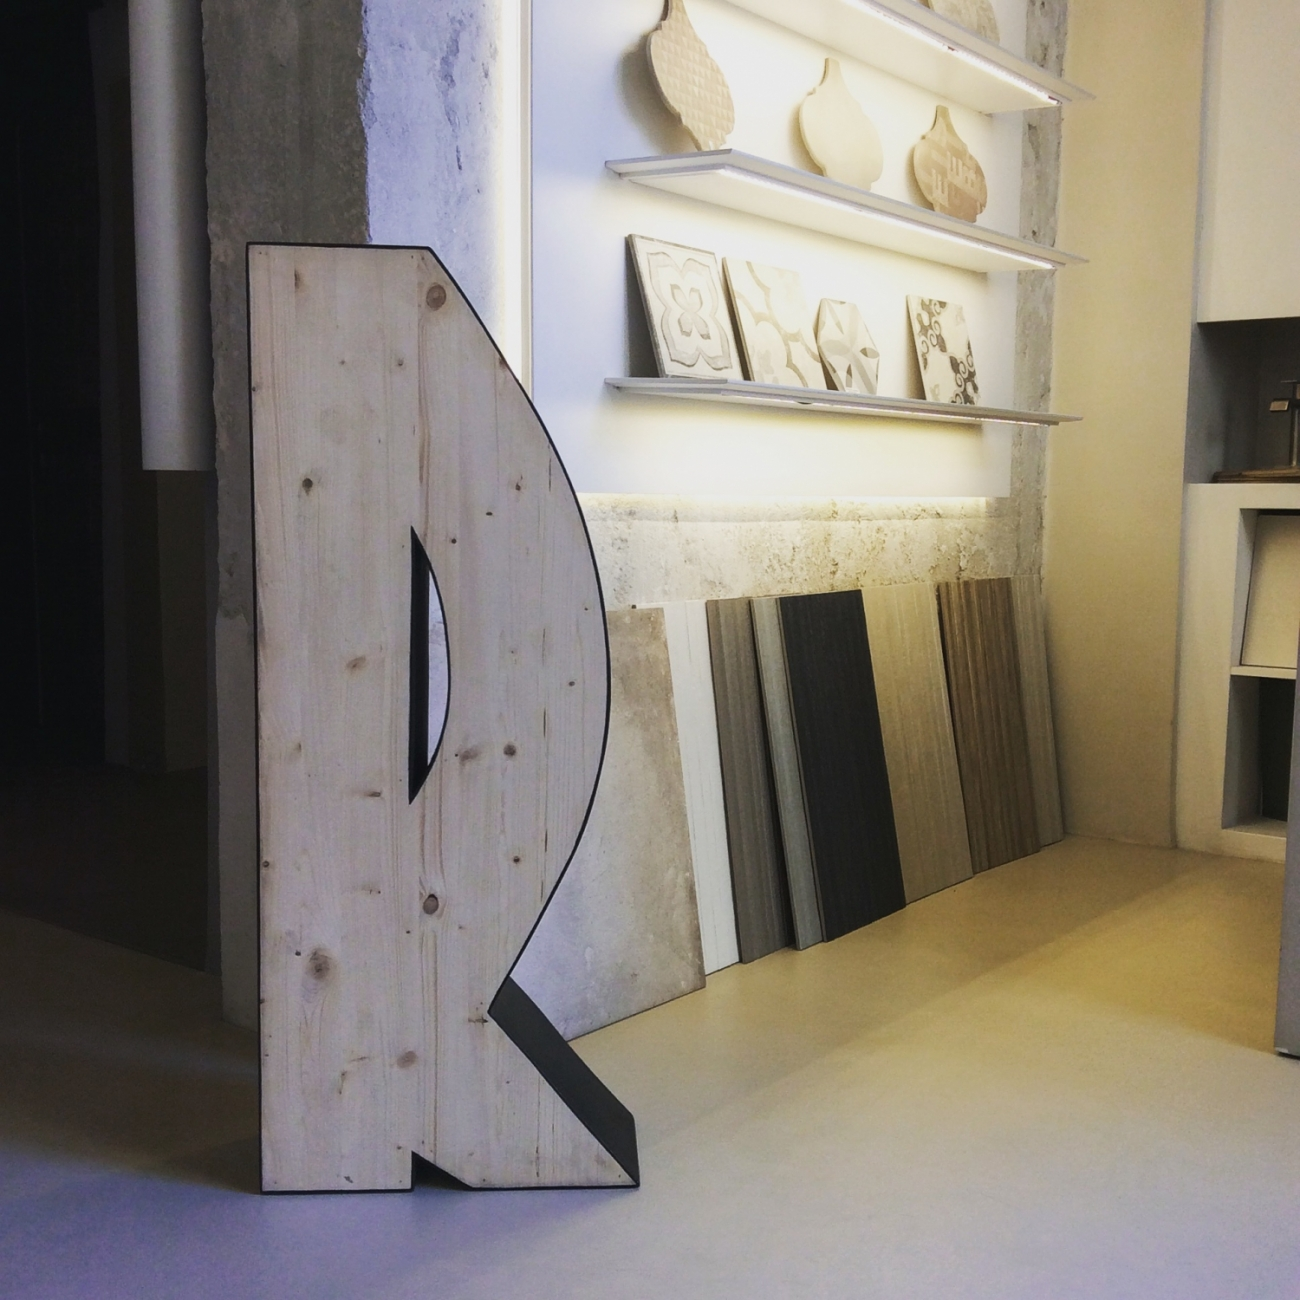 Extra large size wooden letters Jane Harman storage and furniture restoration in Florence